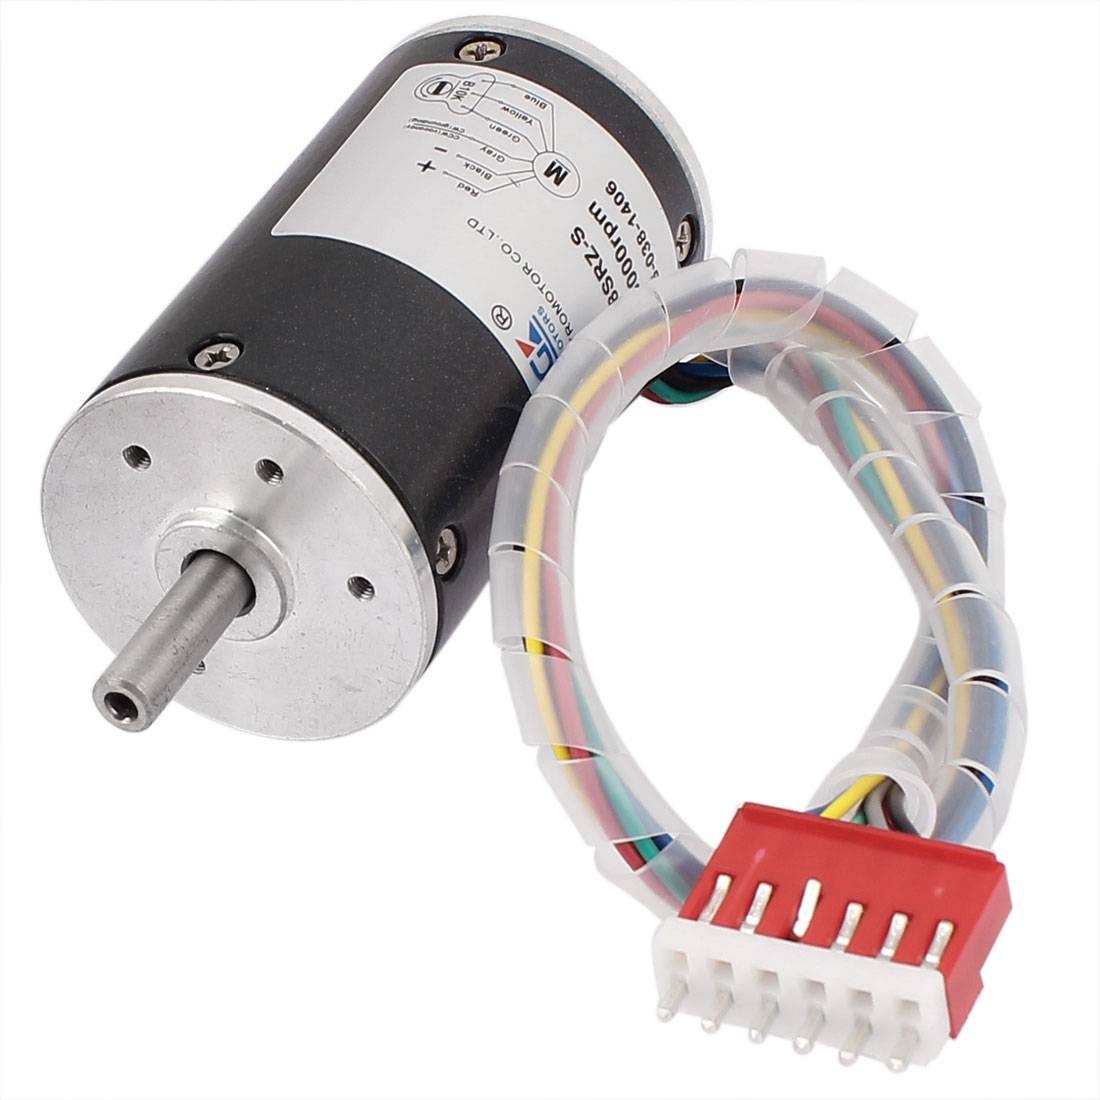 DC 24V 5000RPM 38mm Diameter Speed Control Brushless Motor